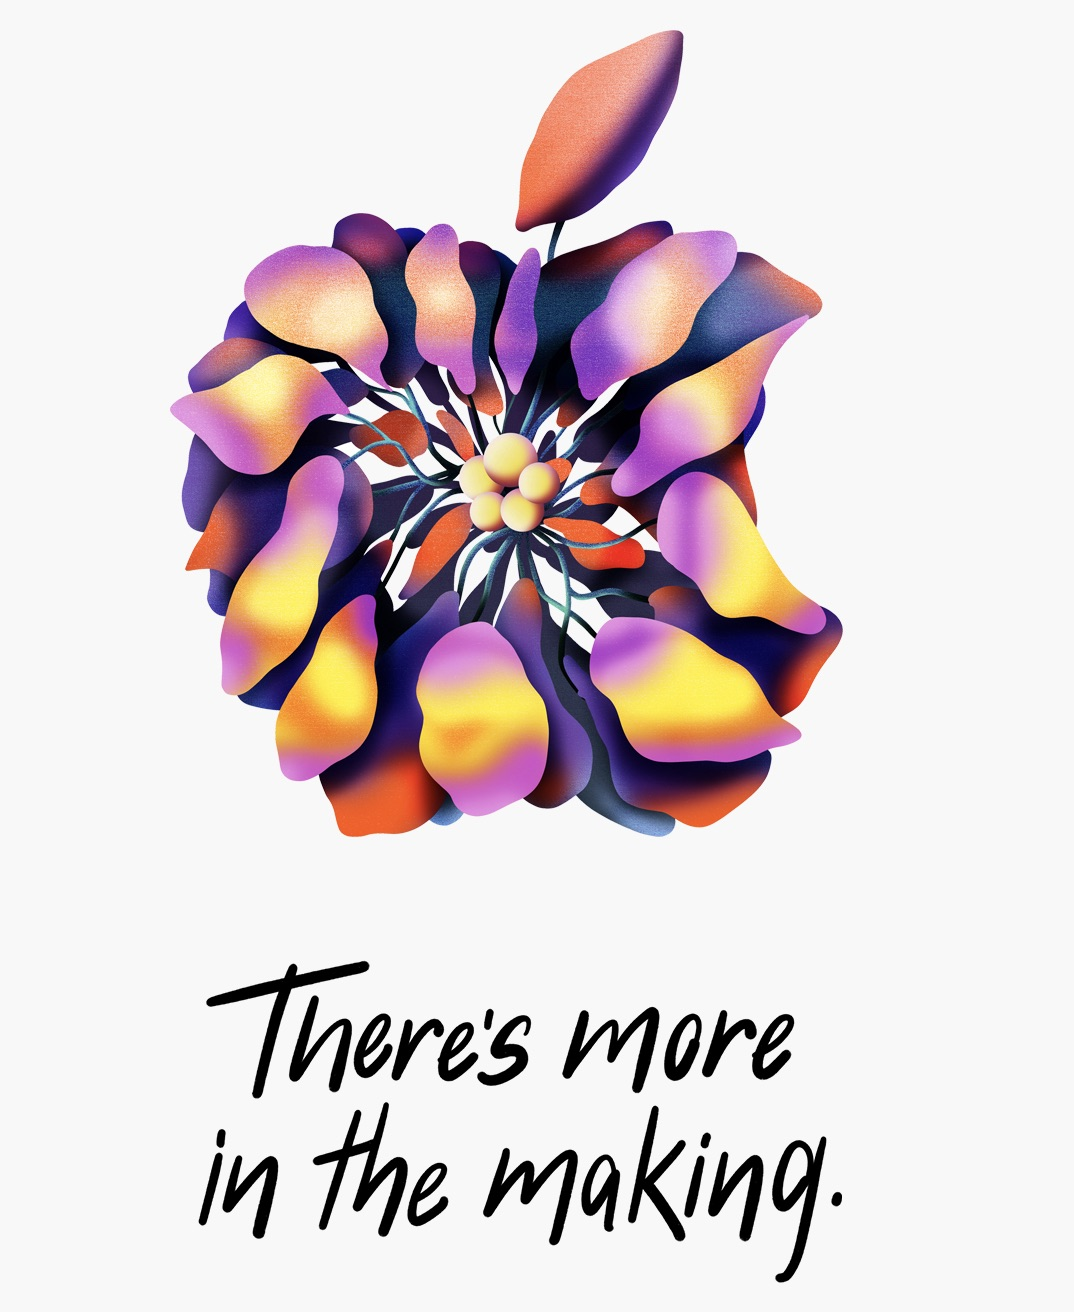 Apple Event 30 Oct 2018 Confirm Img 1